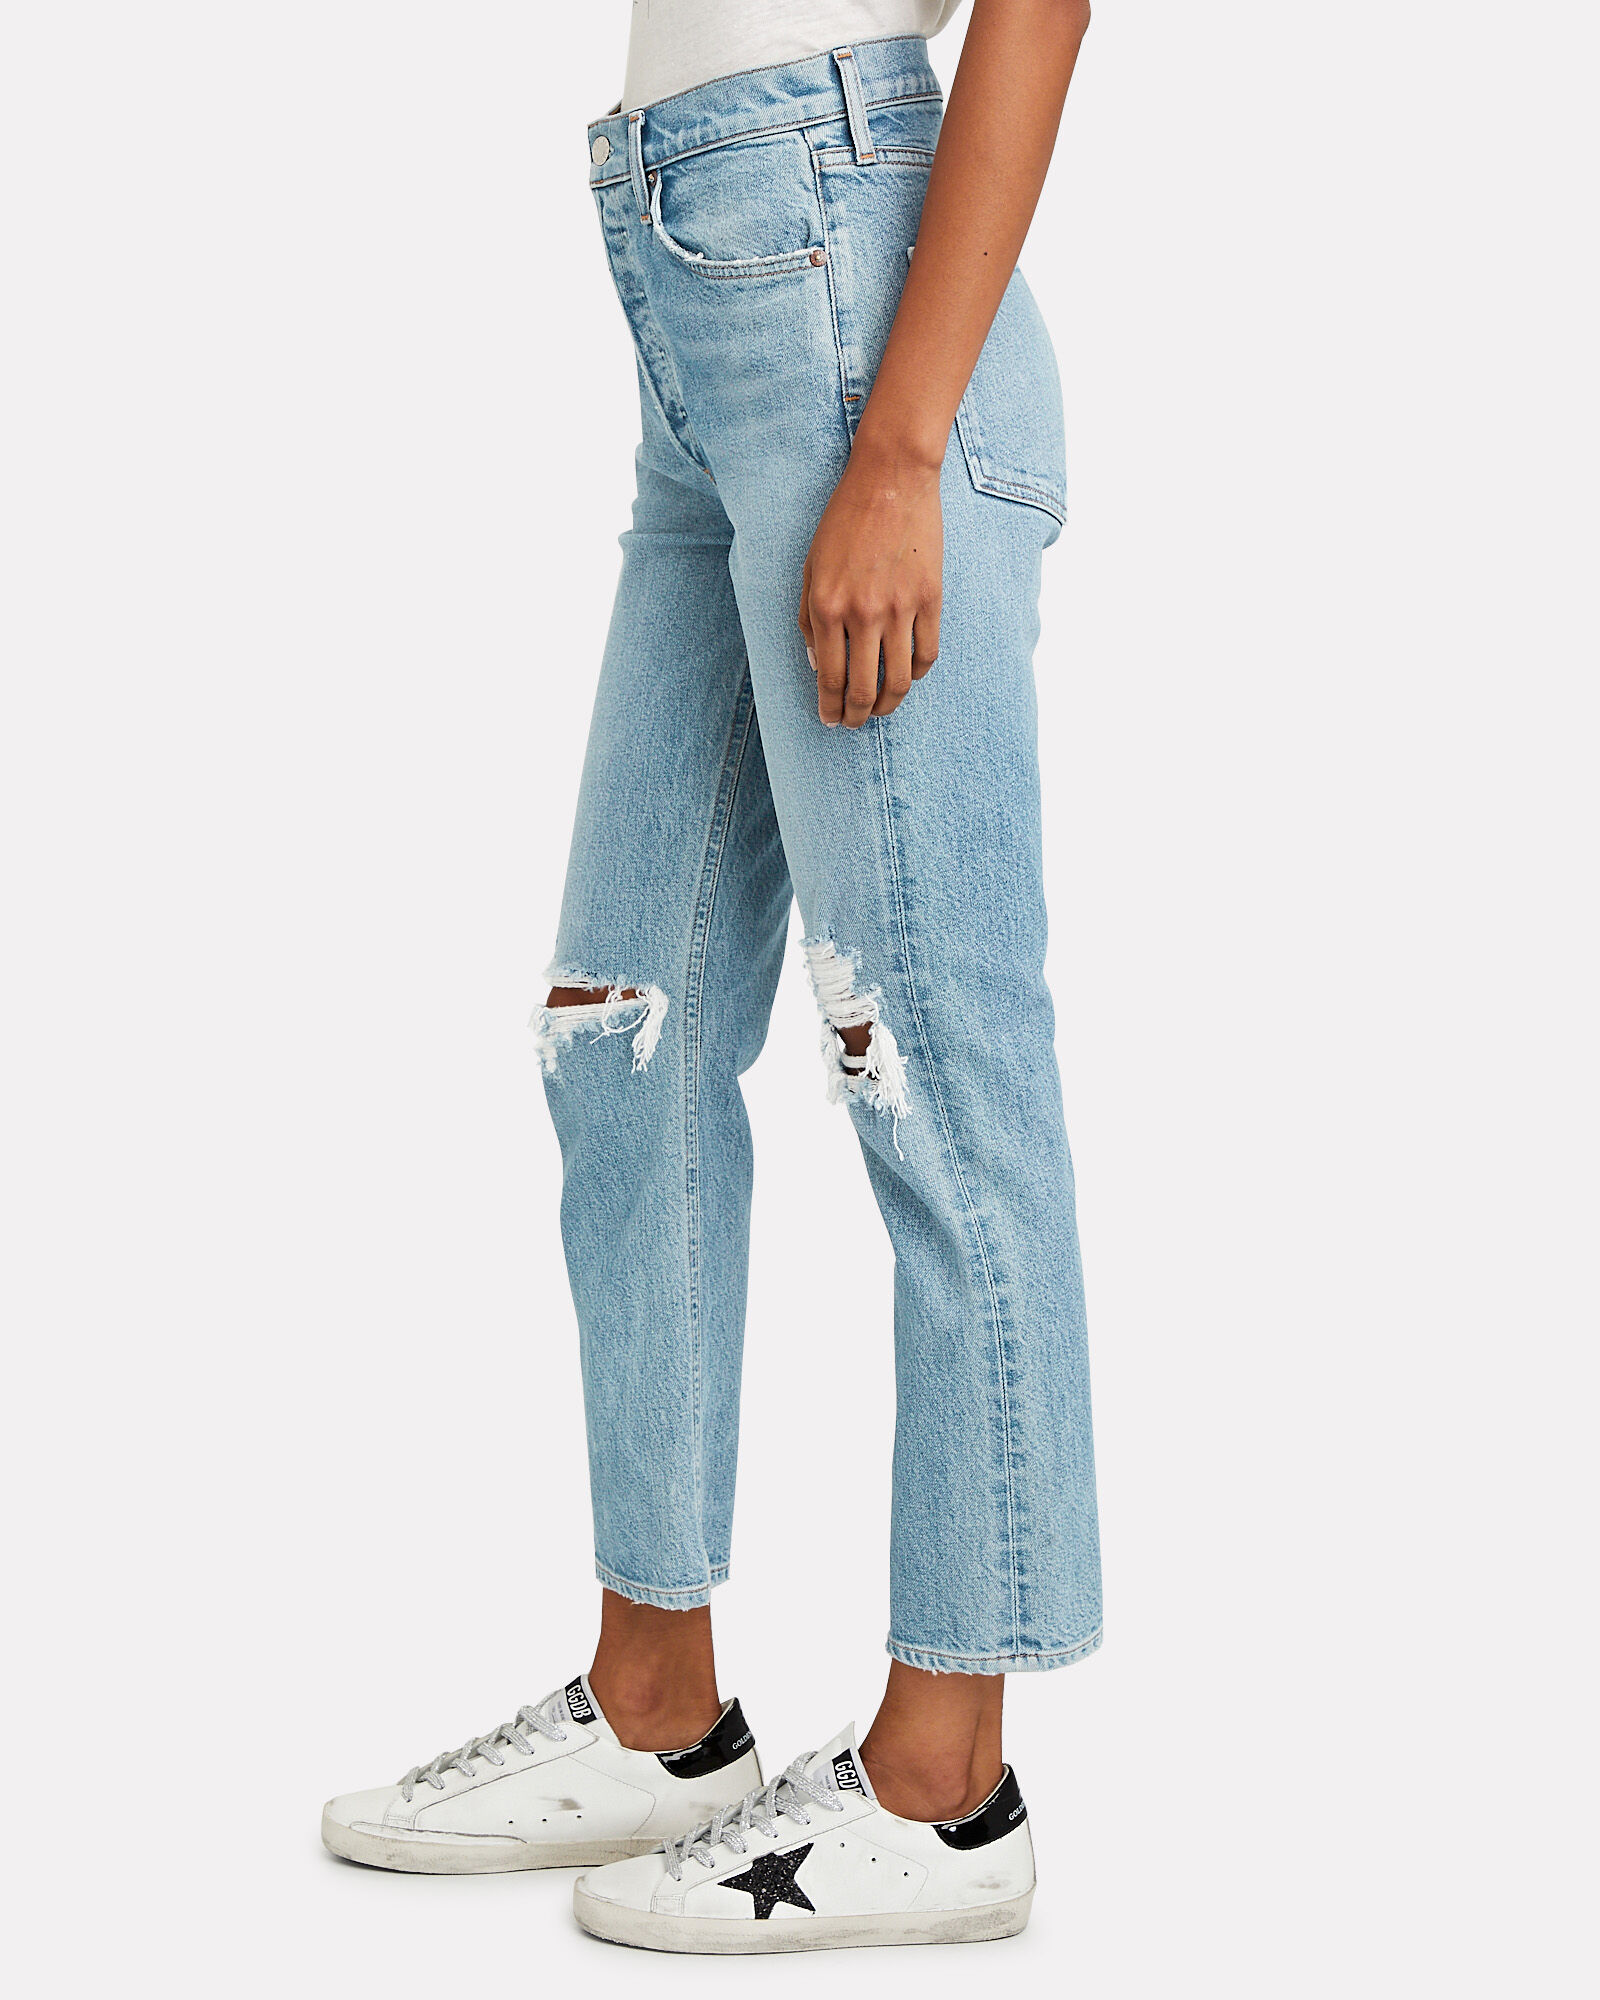 90s Fitted Straight-Leg Jeans, FALL OUT, hi-res